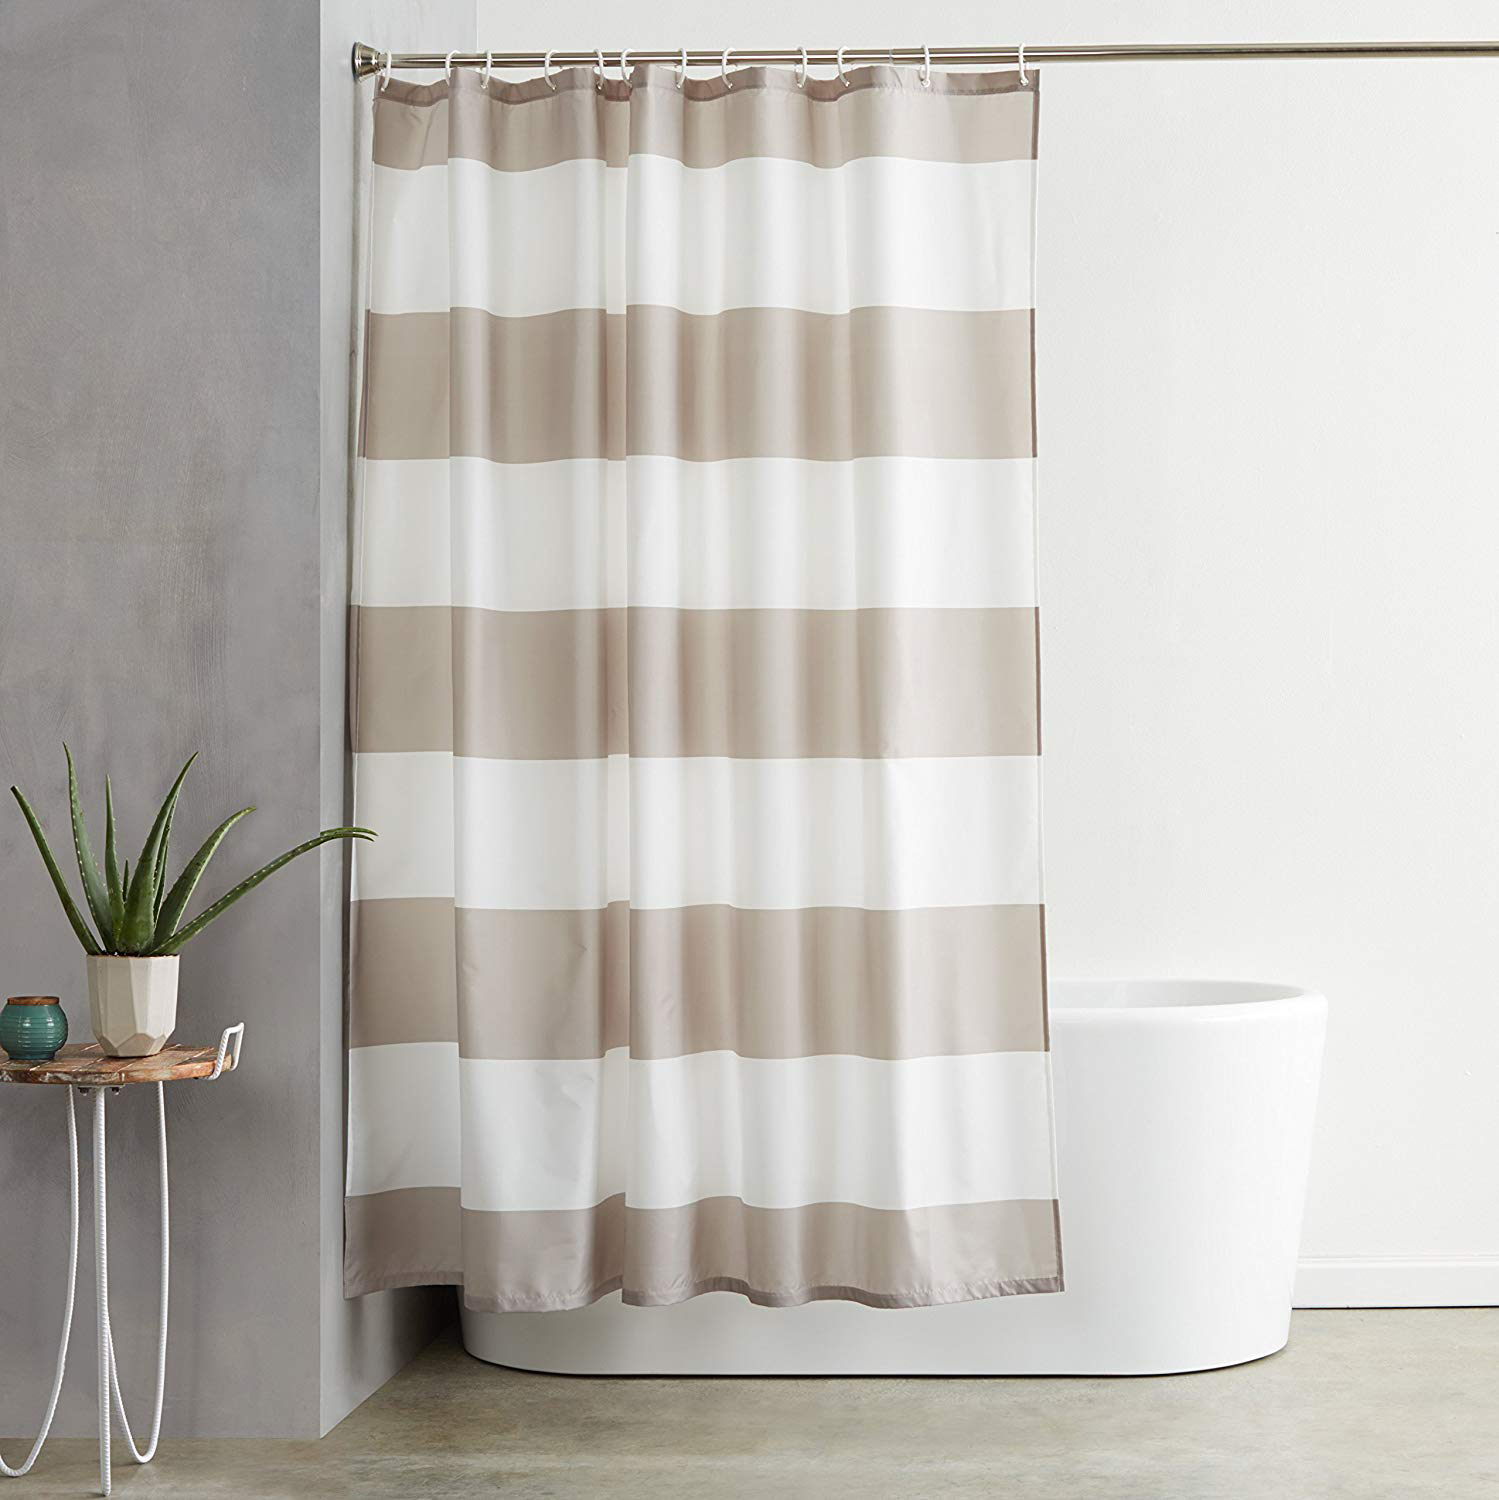 AmazonBasics Shower Curtain and Liner